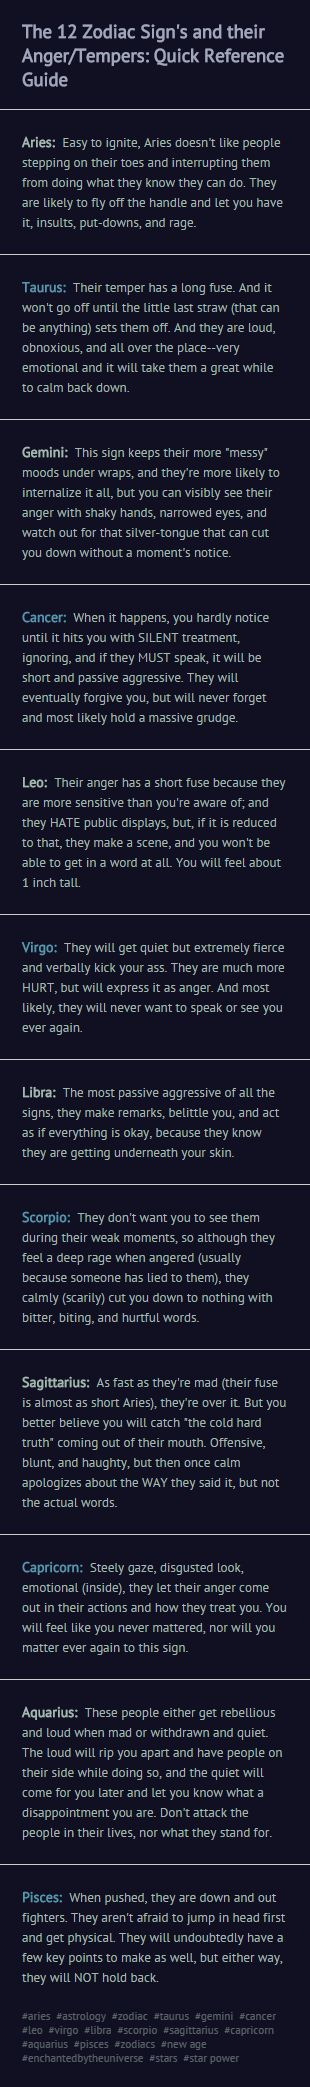 The zodiac signs & their anger/tempers: So incredibly accurate for all the signs...not just mine.